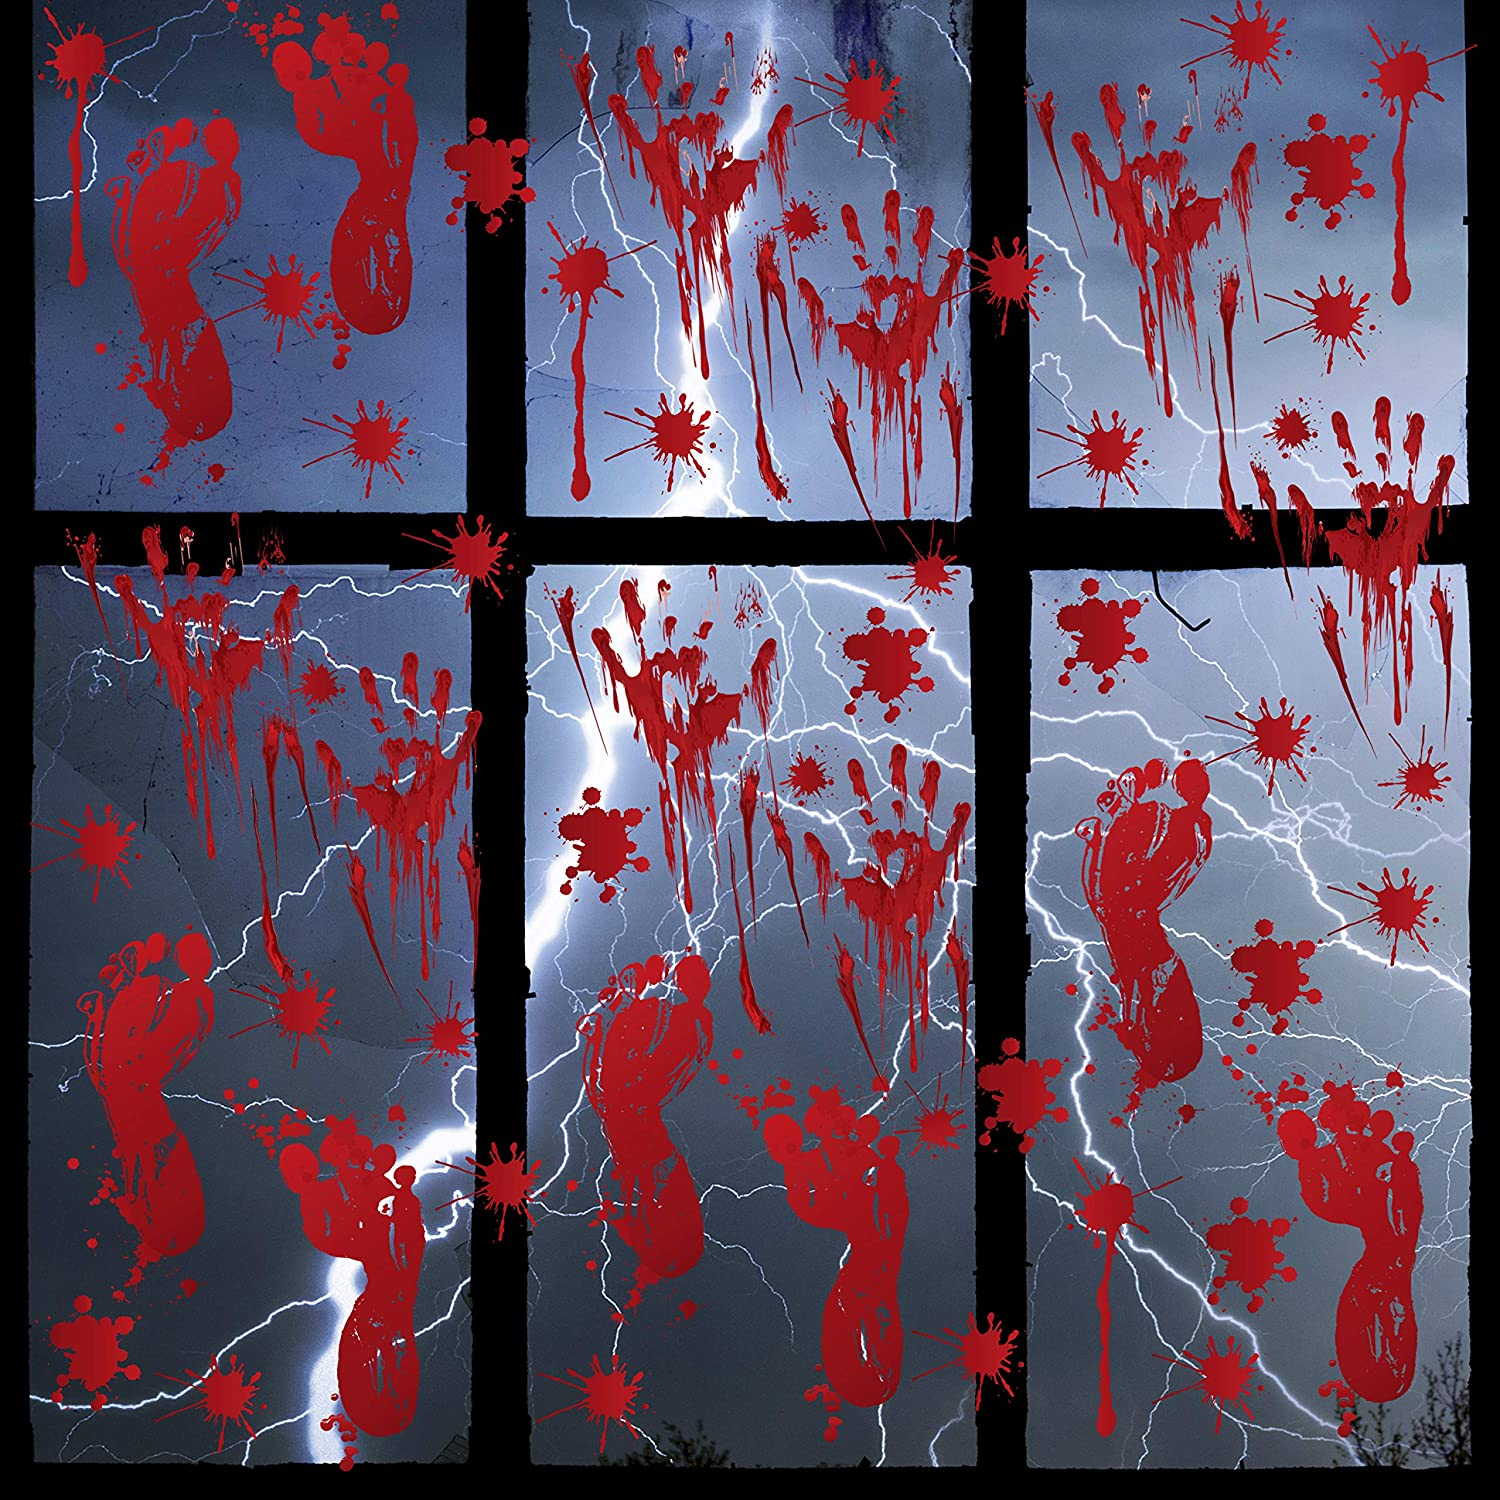 80 Pcs Halloween Bloody Handprint Footprint Floor Stickers Window Clings Decoration Horror Bathroom Zombie Decals Stickers for Halloween Party Supplies (8 Sheets)